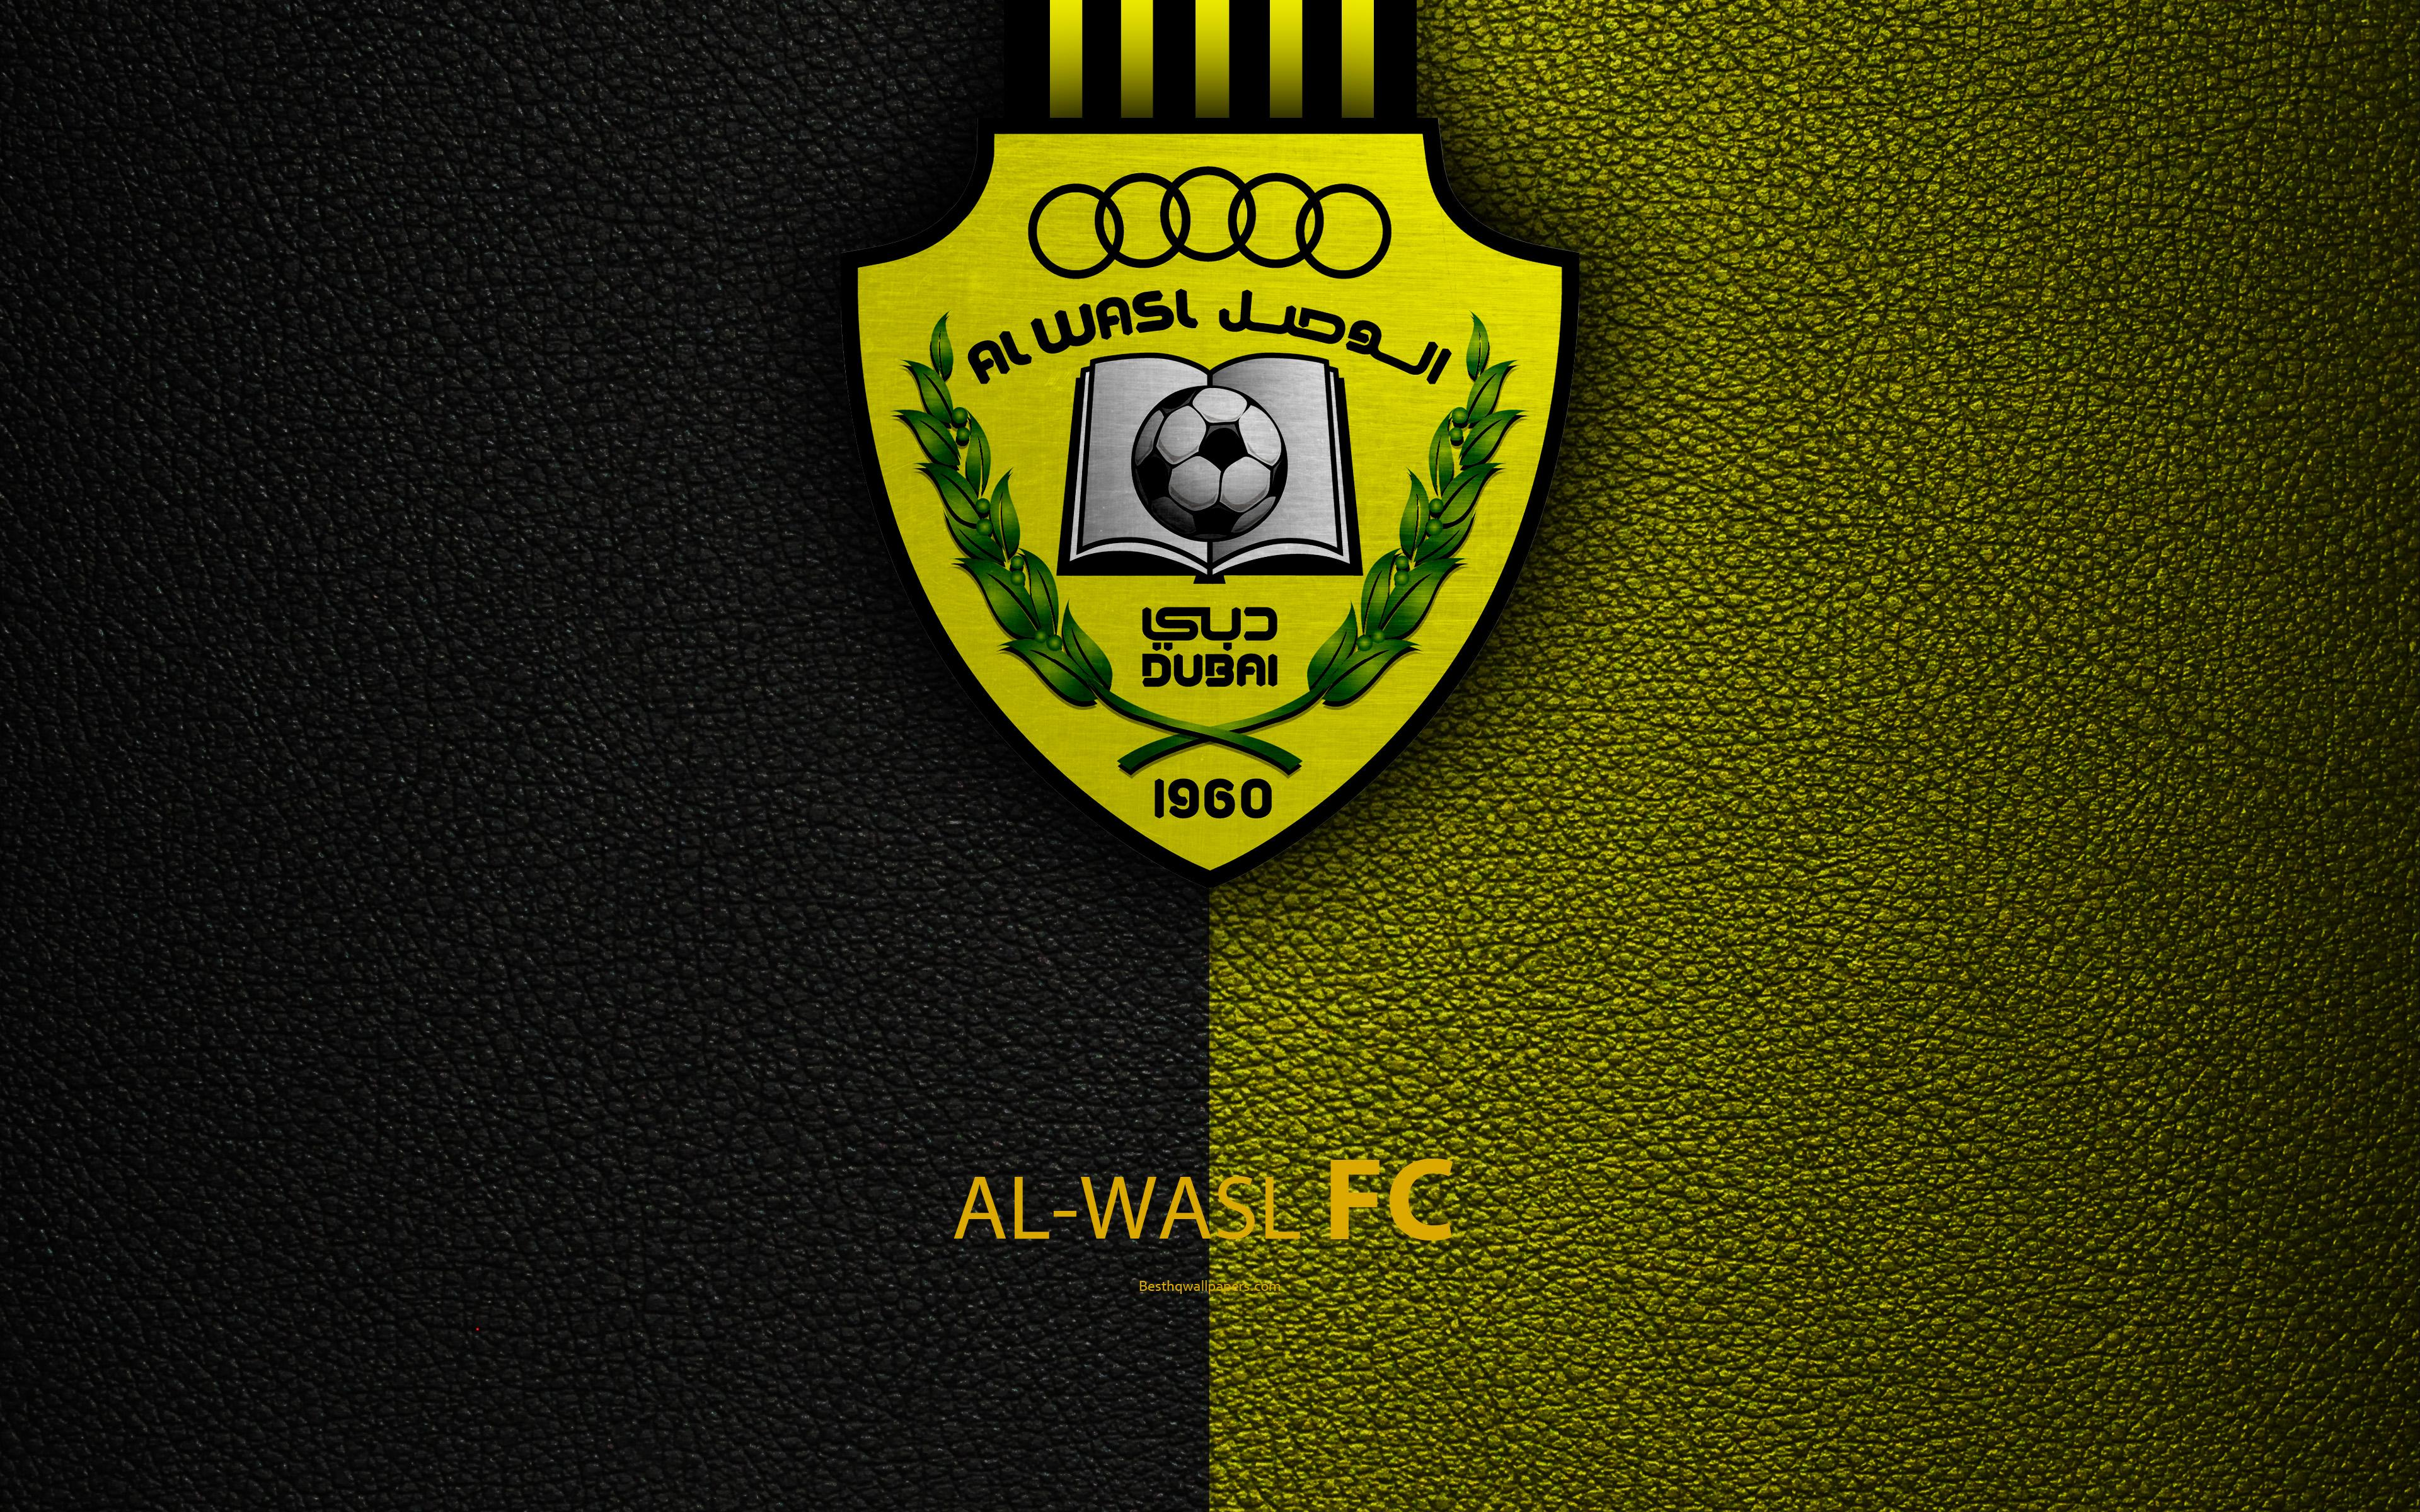 Download wallpapers Al-Wasl FC, 4K, logo, football club, leather ...